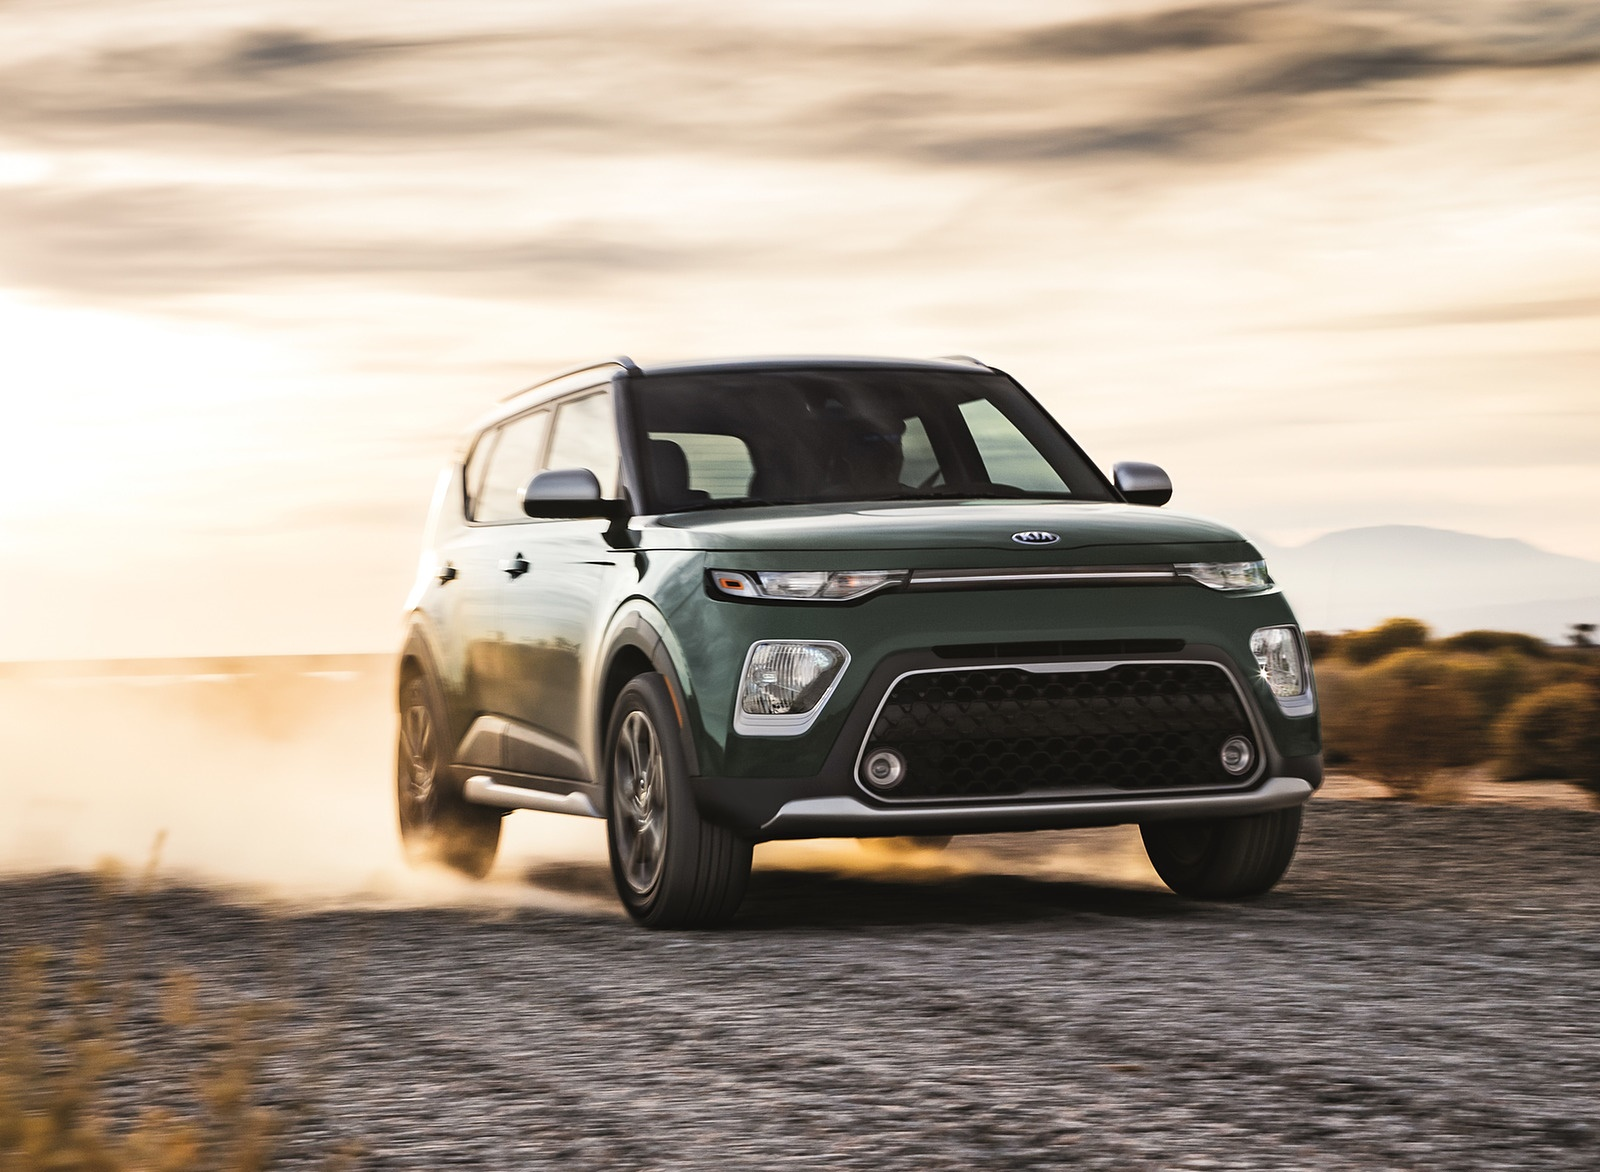 2020 Kia Soul X-Line Off-Road Wallpapers (10)